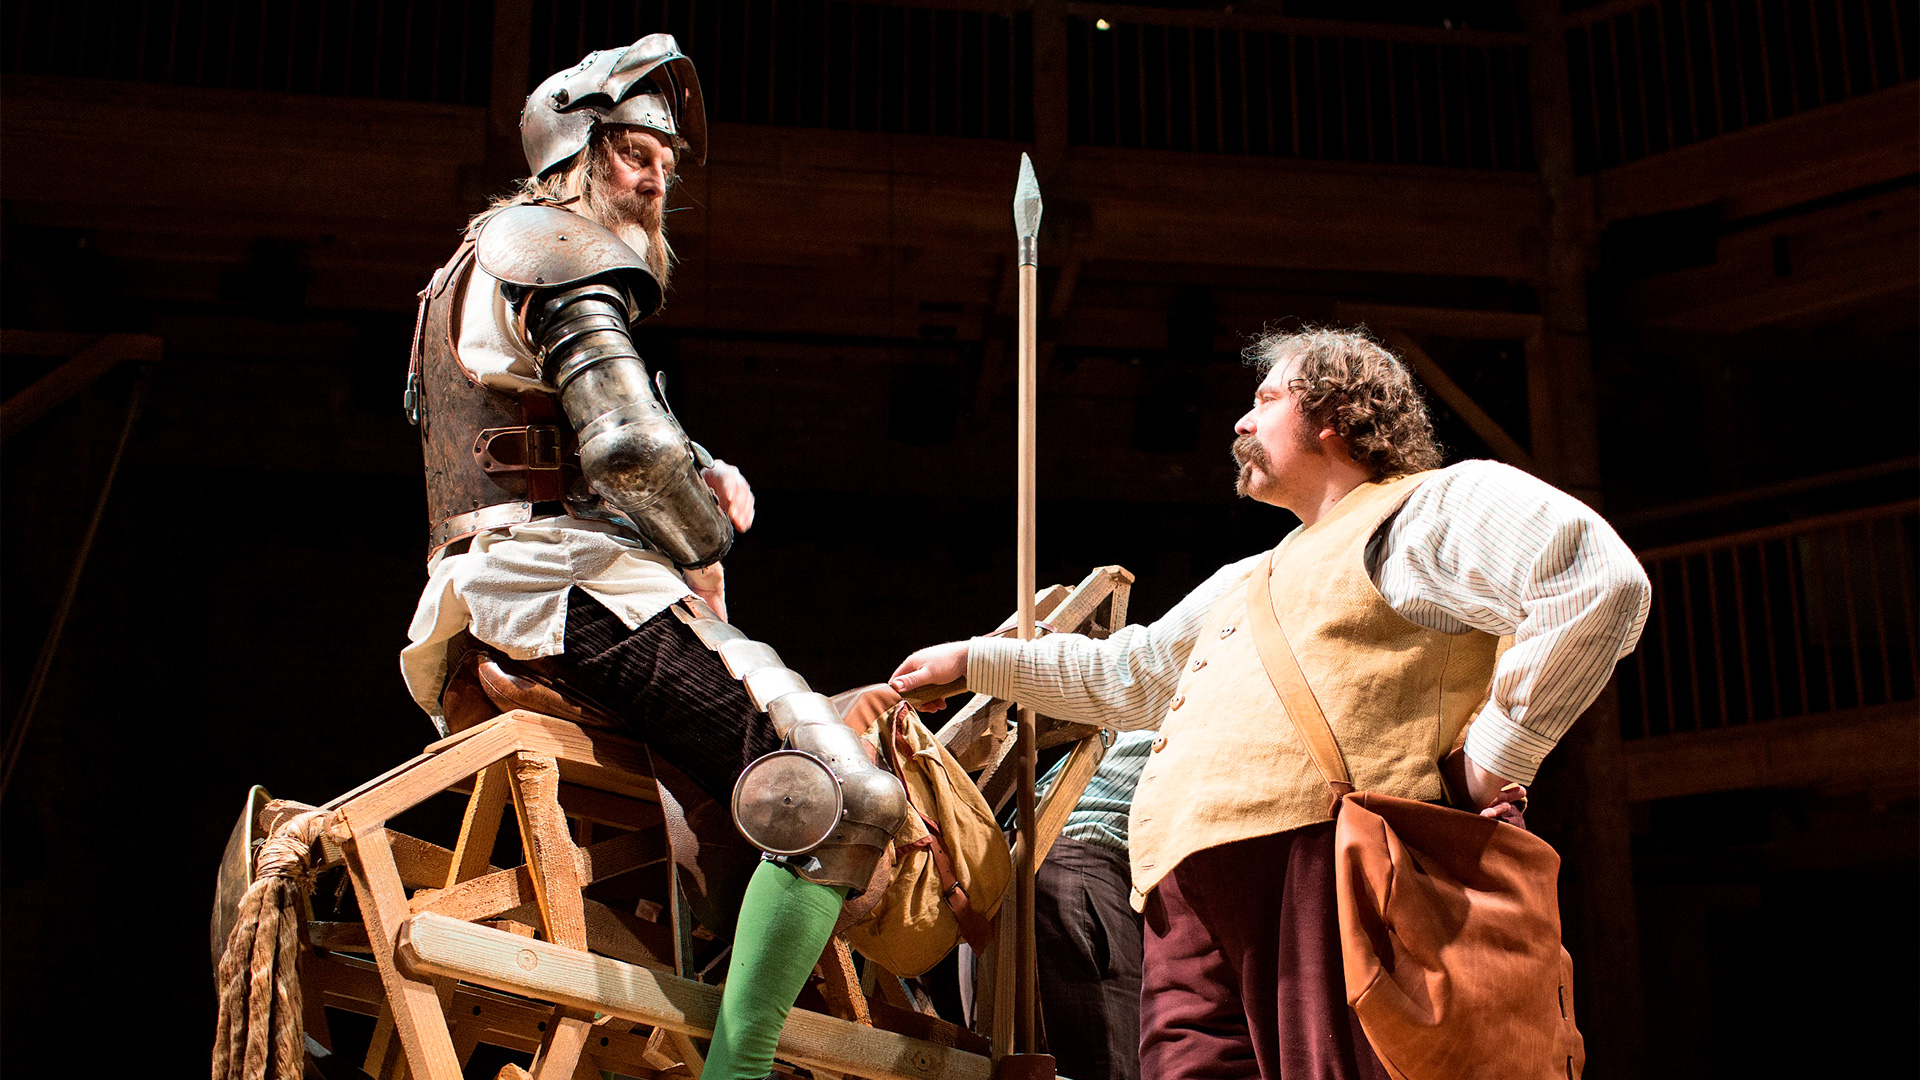 Dressed in armour, David Threlfall sits on a wooden horse as Rufus Hound stands below, leaning against the horse.